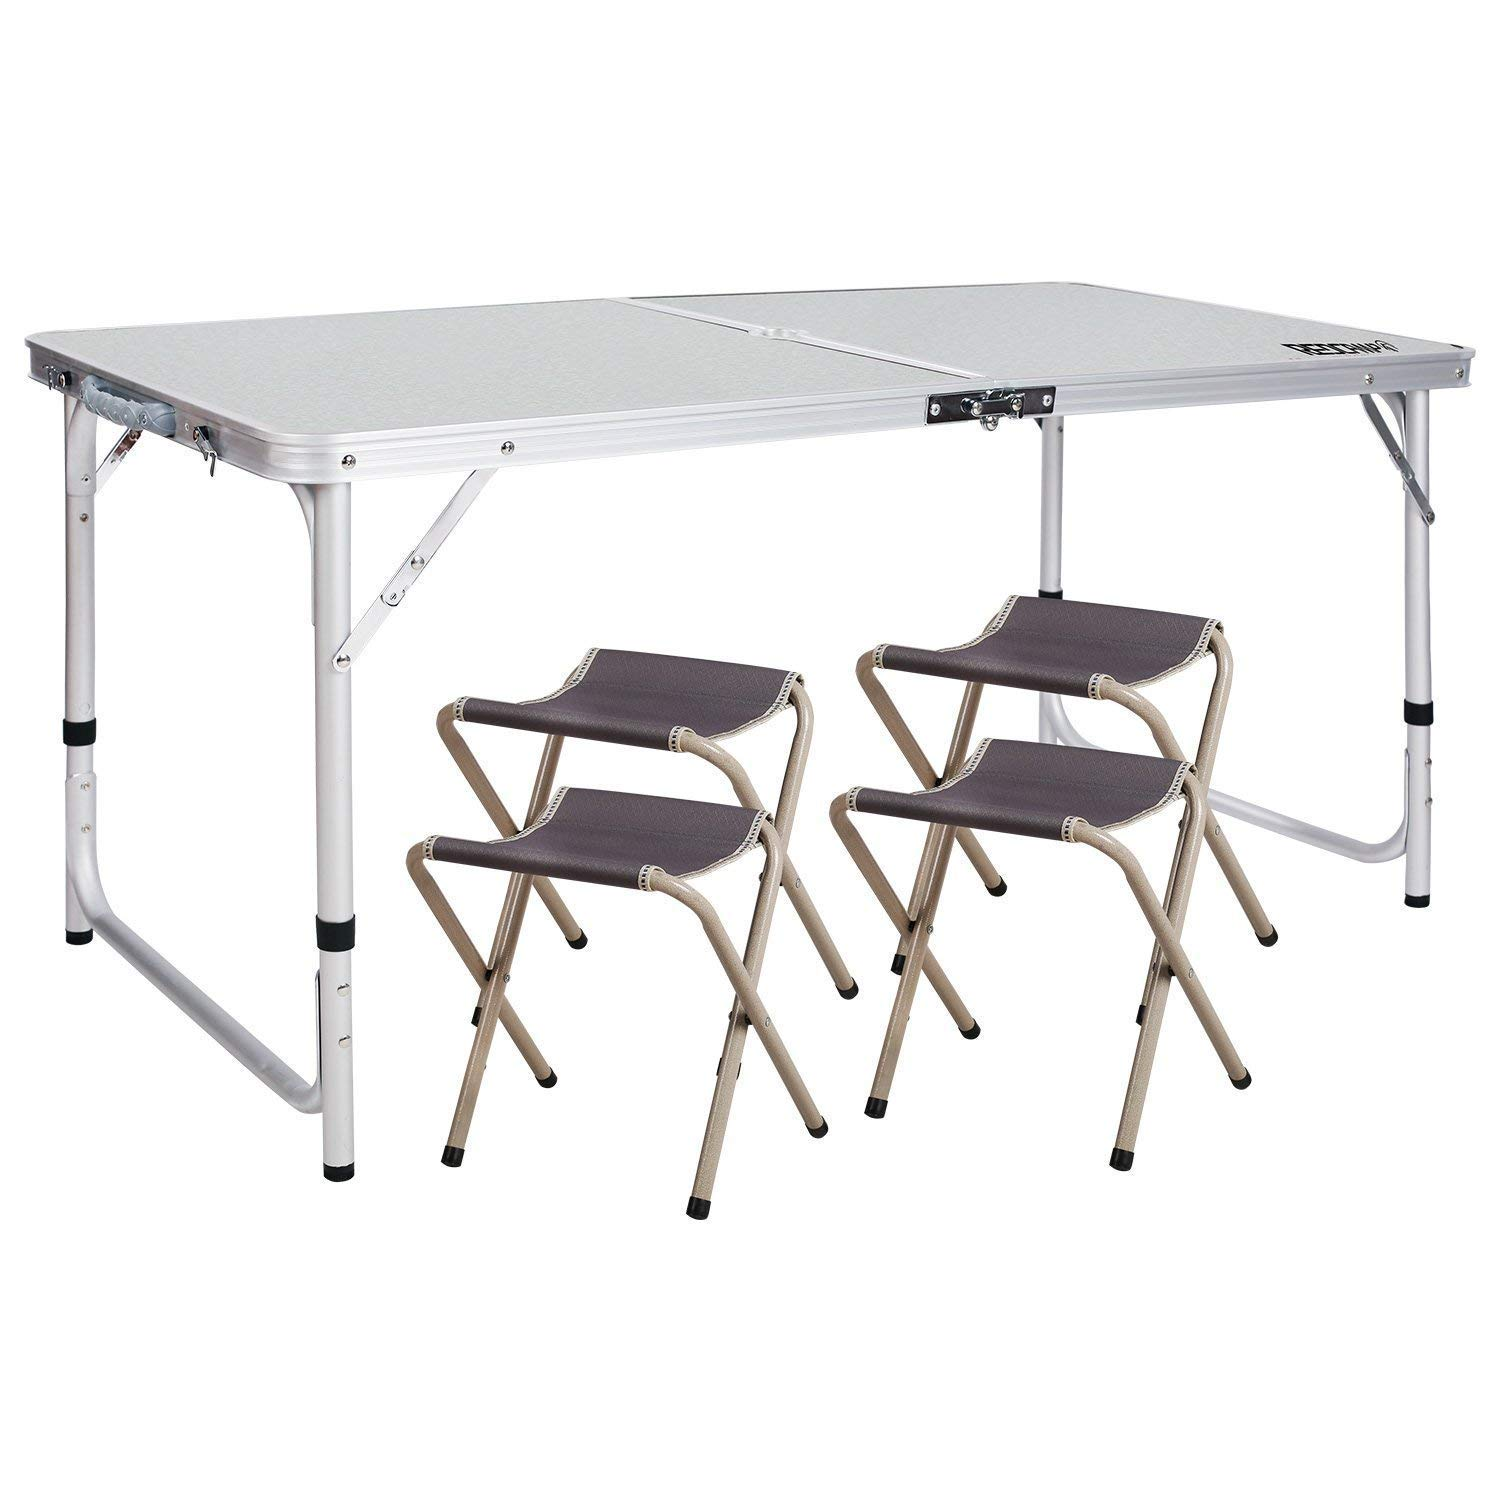 REDCAMP Outdoor Picnic Table Adjustable, Folding Camping Table with 4 Chairs, Aluminum White 47.2''x23.6''x27'' by REDCAMP